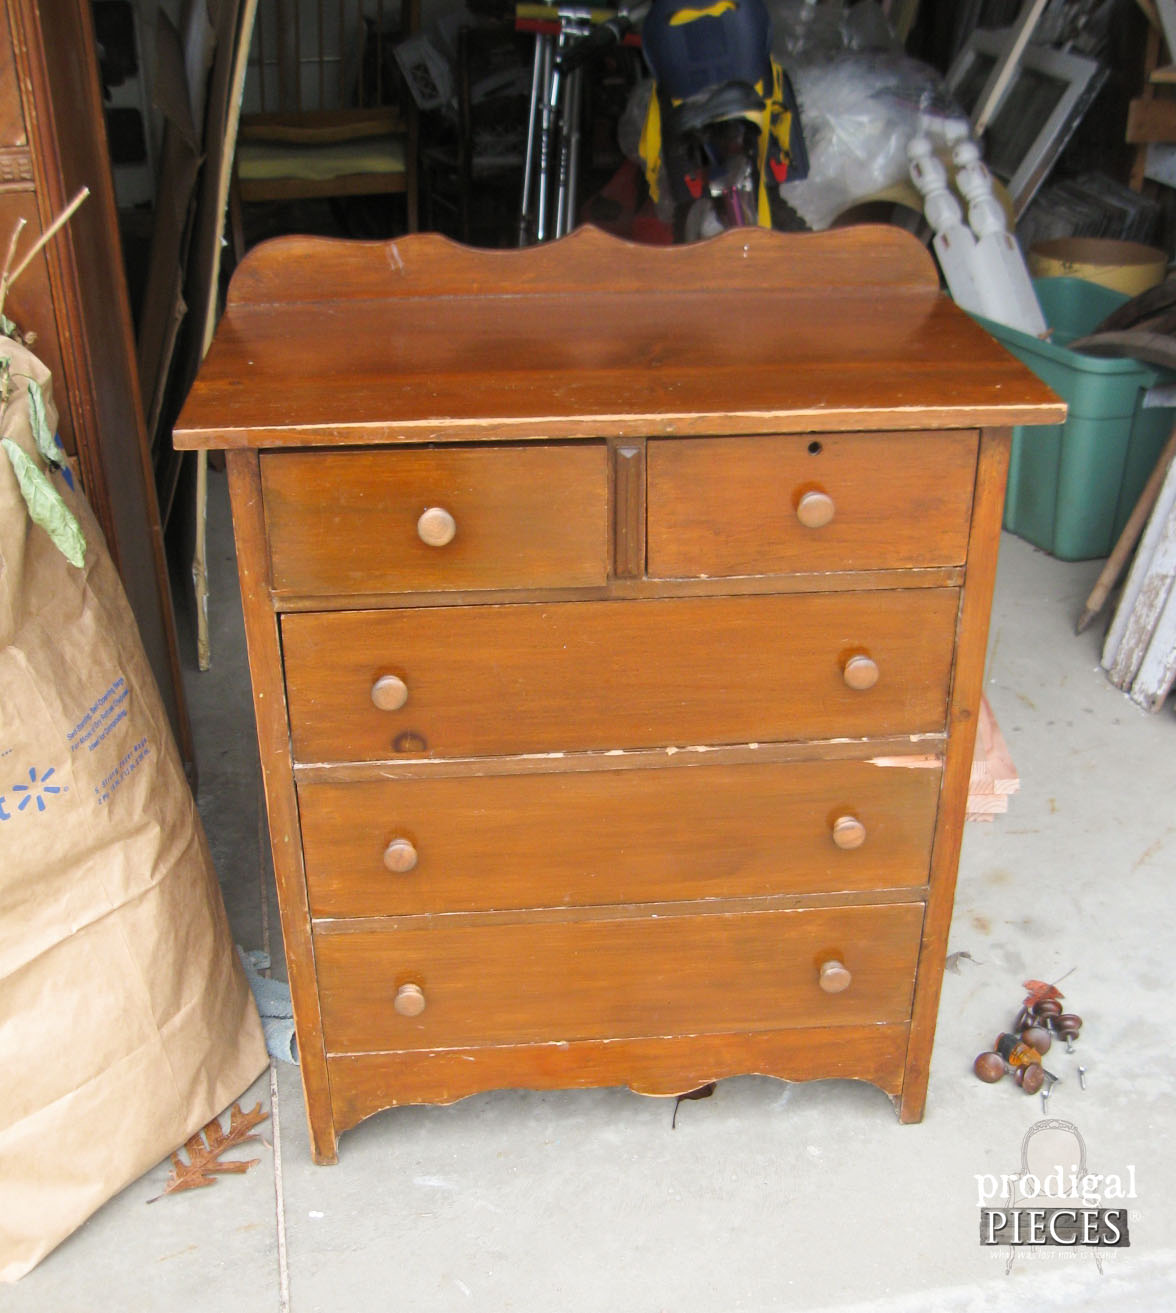 Curbside Find Child's Chest of Drawers Before Made into Card Catalog by Prodigal PIeces | www.prodigalpieces.com